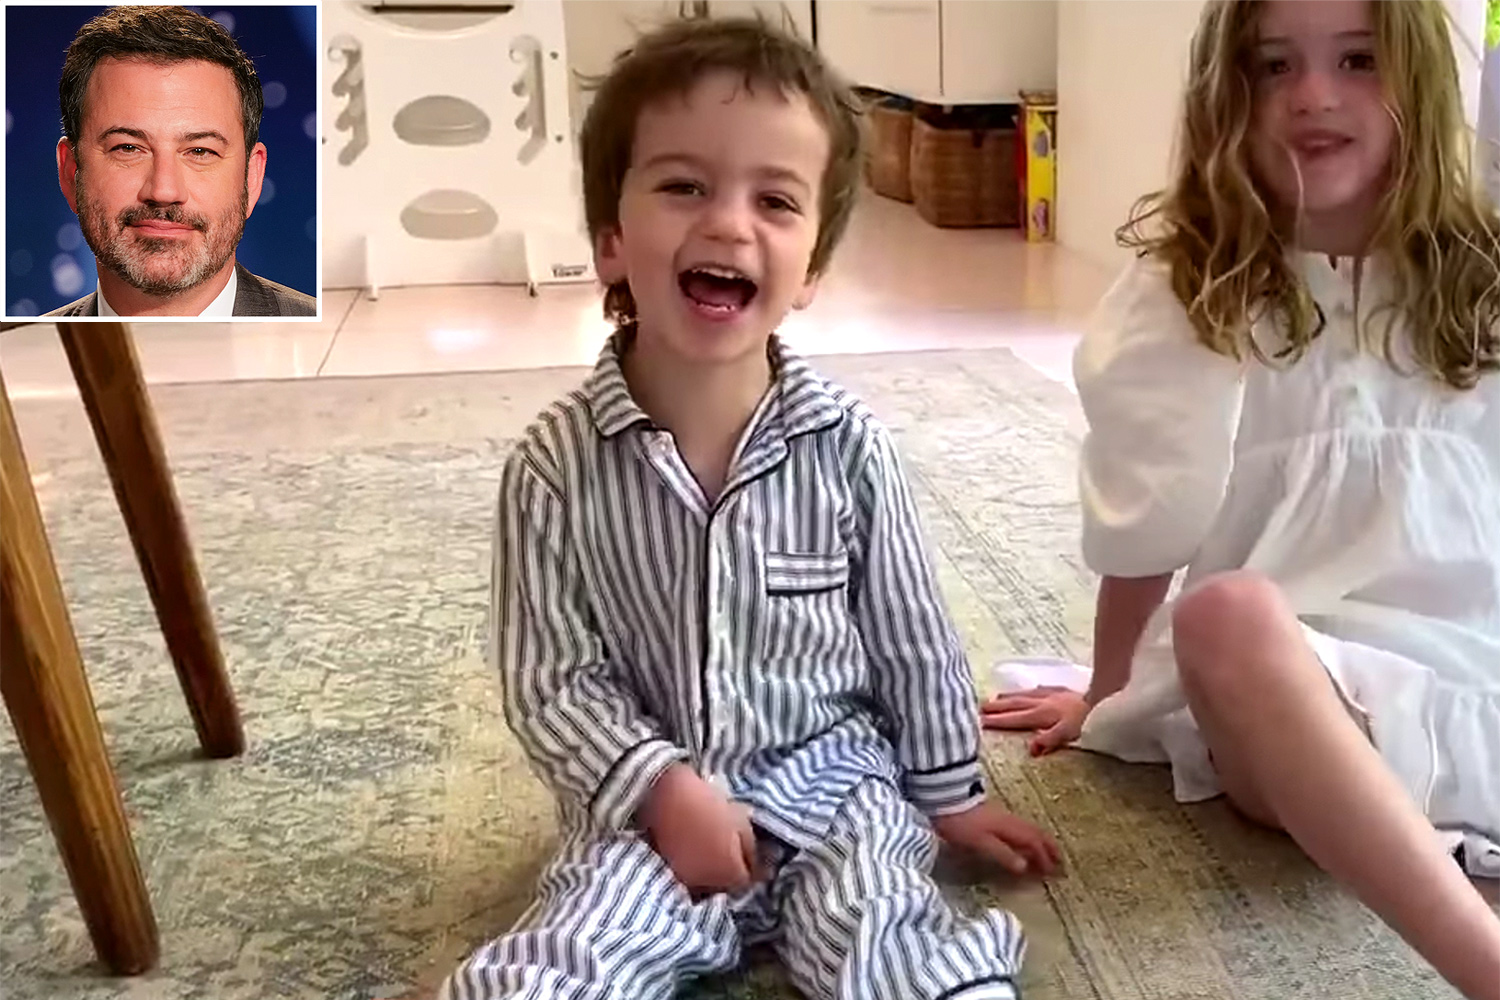 WATCH: No Laughing Matter — Jimmy Kimmel Shares Video of Three-year-old Son's Health Struggles to Show 'What this Election is About'